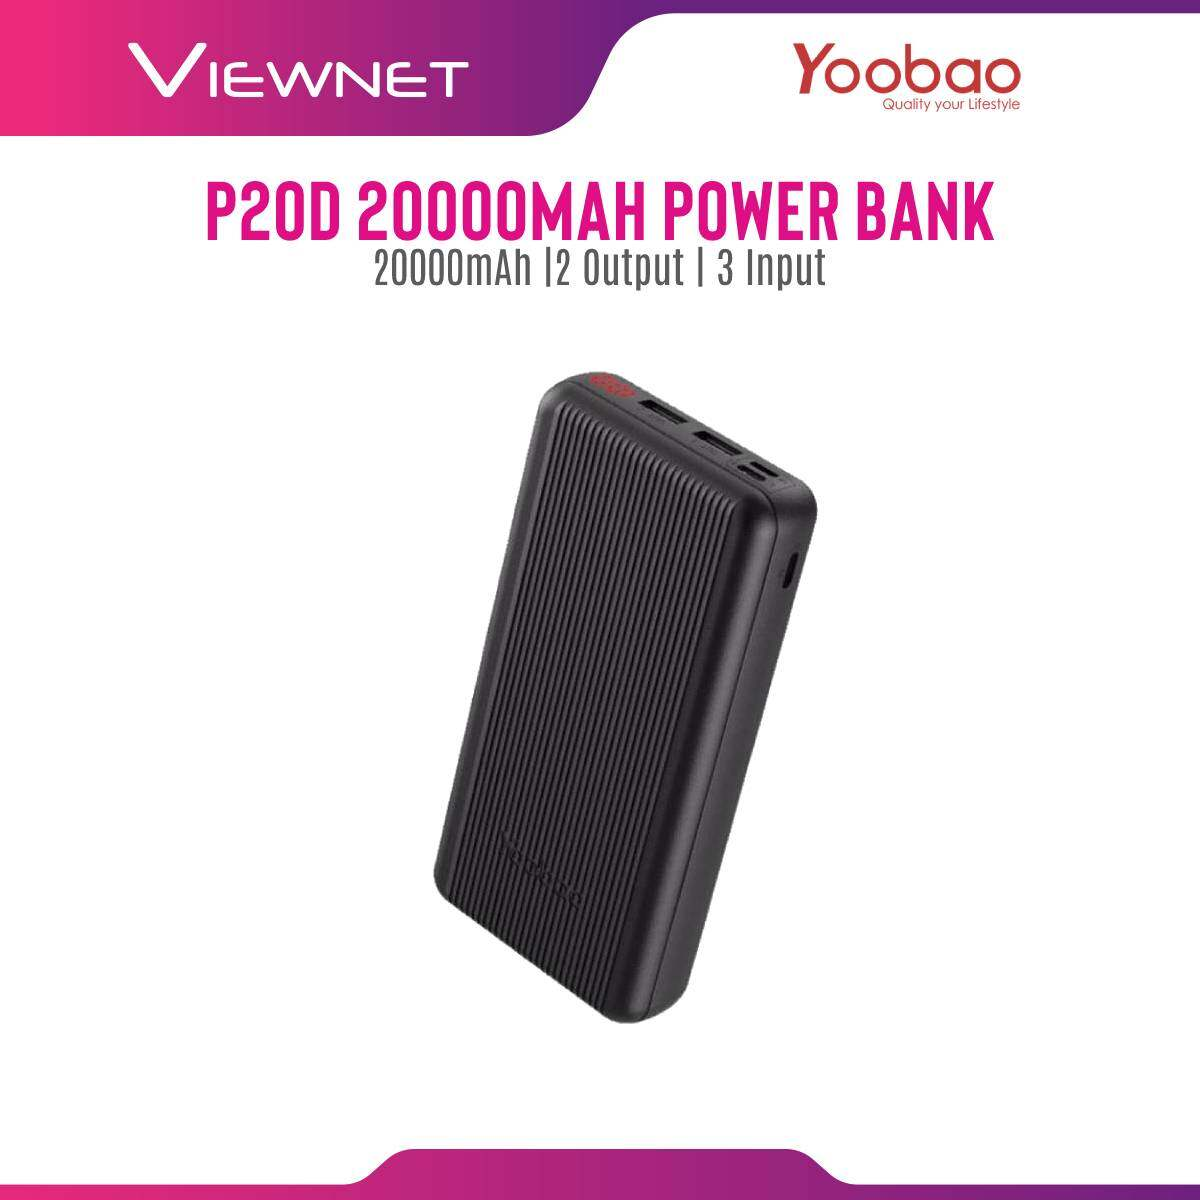 Yoobao P20D 20000mAh Power Delivery Classy Power Bank with Three Input Dual Output & LCD Power Display